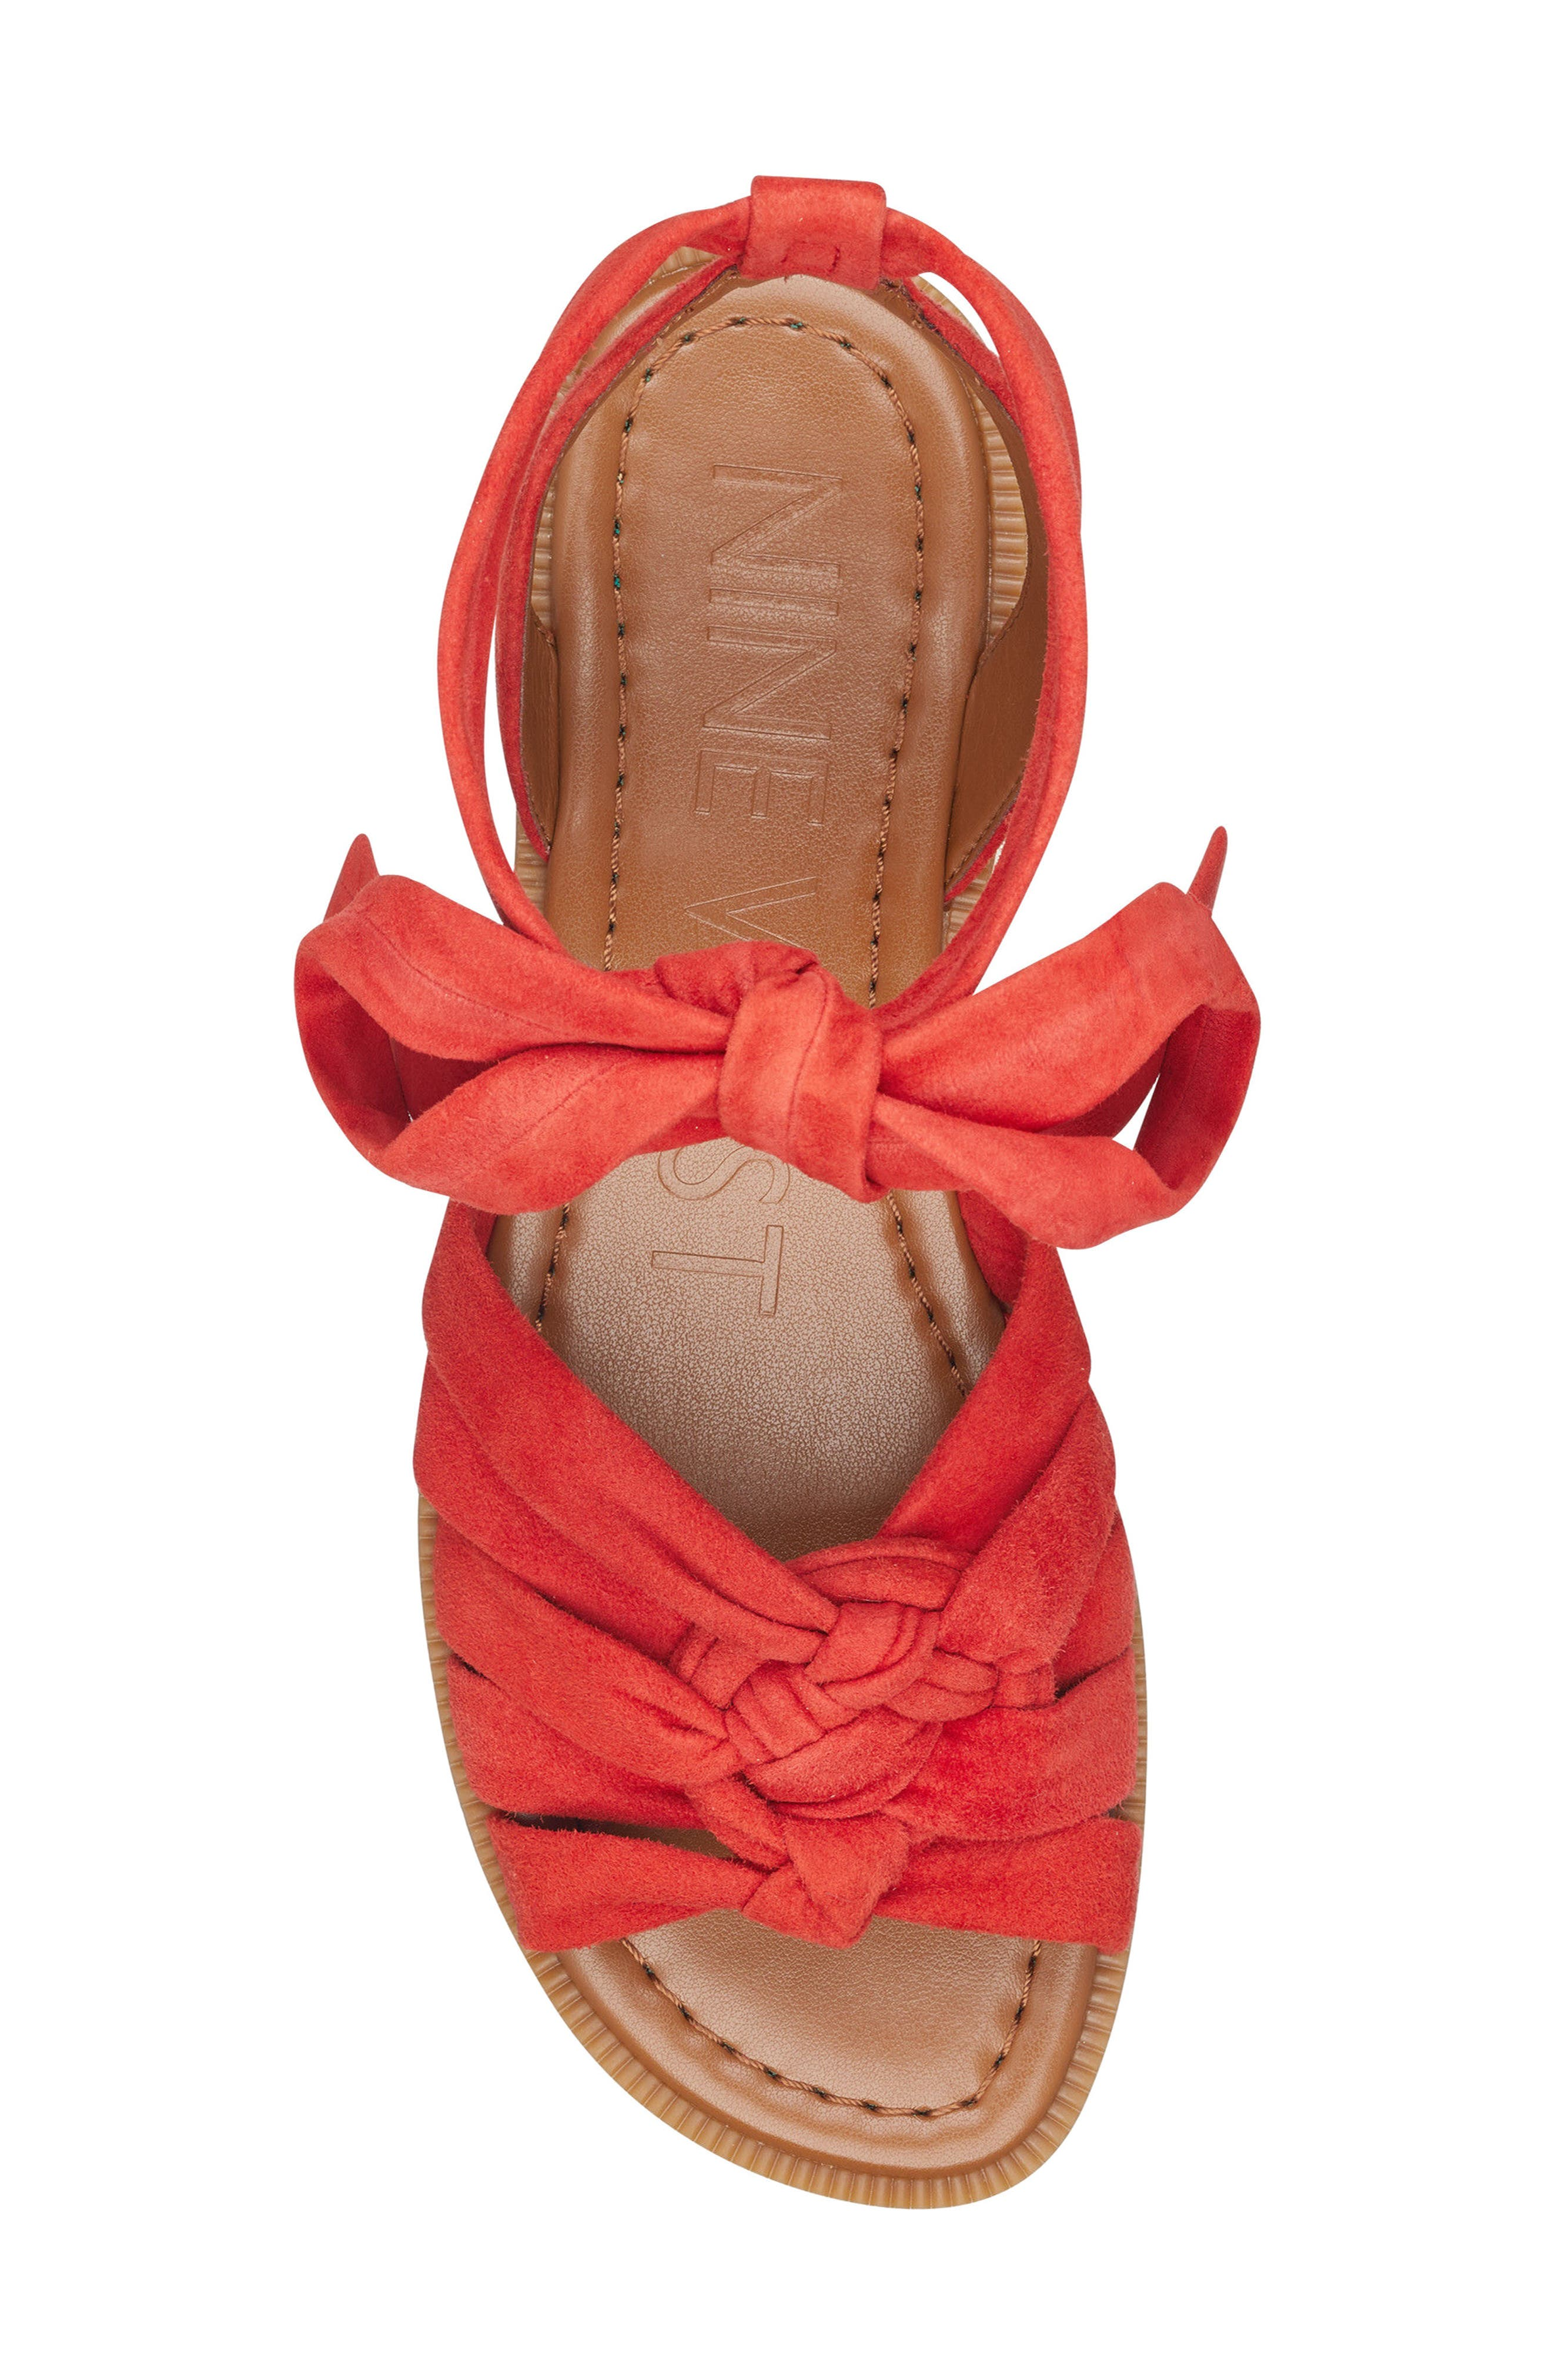 Xameera Knotted Sandal,                             Alternate thumbnail 5, color,                             Red Suede